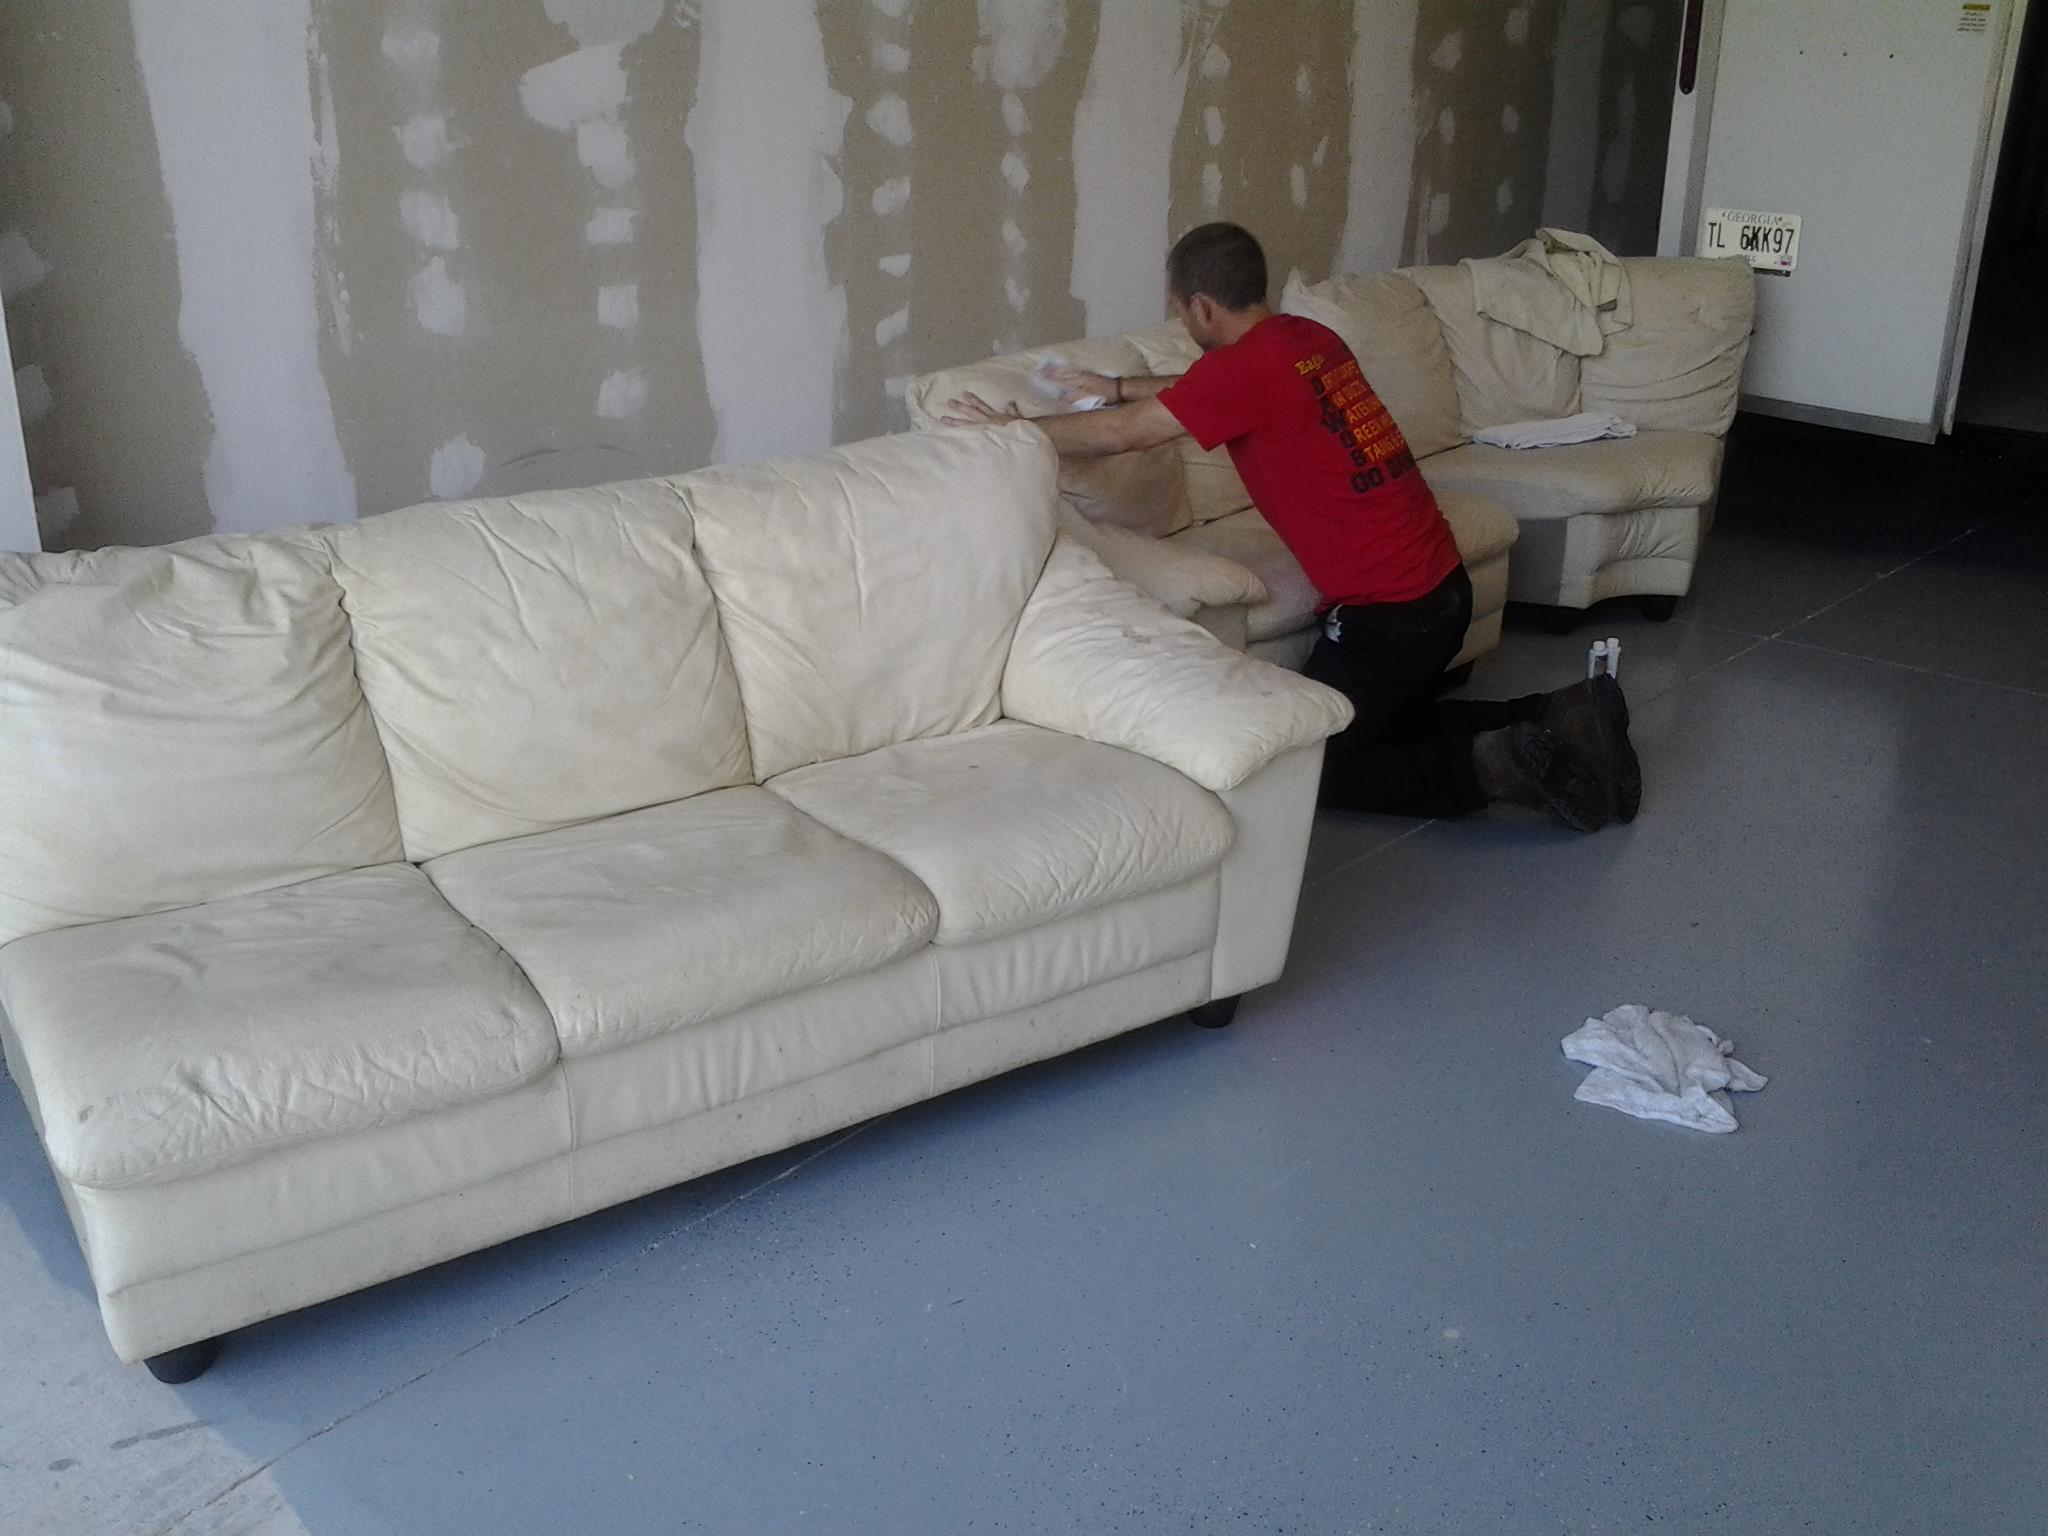 Carpet Cleaning Upholstery Cleaning Area Rug Cleaning Matress